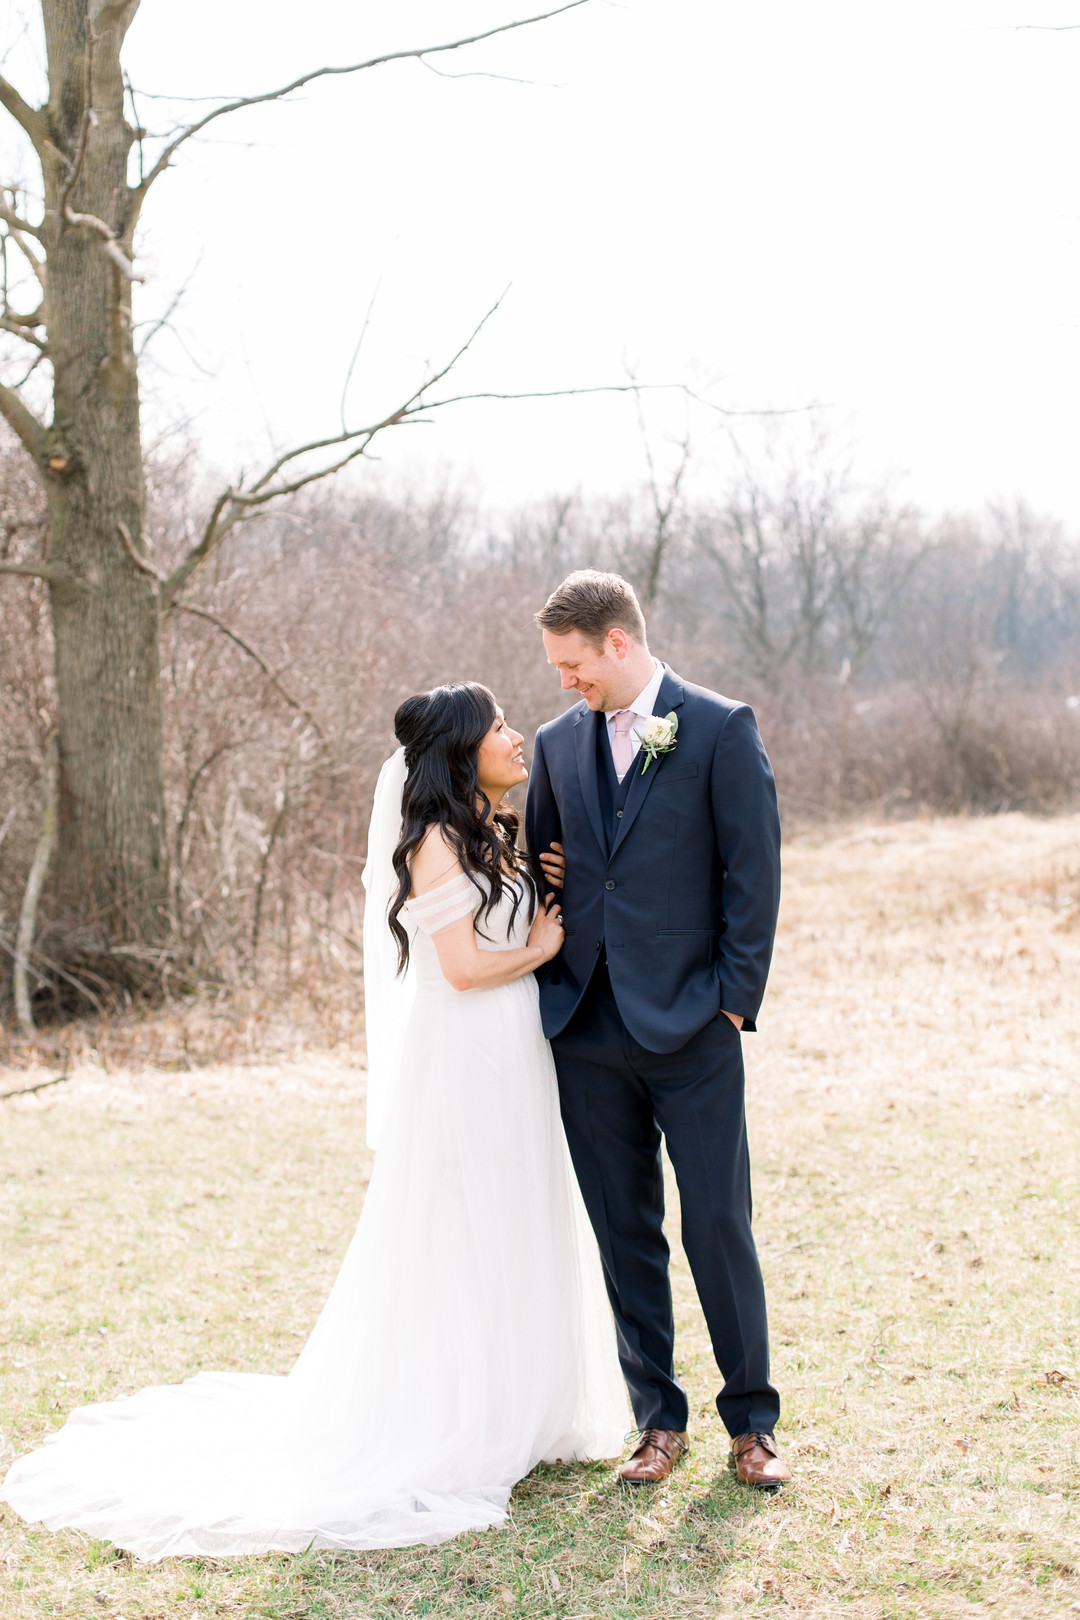 Wedding first look: Spring wedding inspiration captured by Nicole Morisco Photography. Find more spring wedding ideas at CHItheeWED.com!